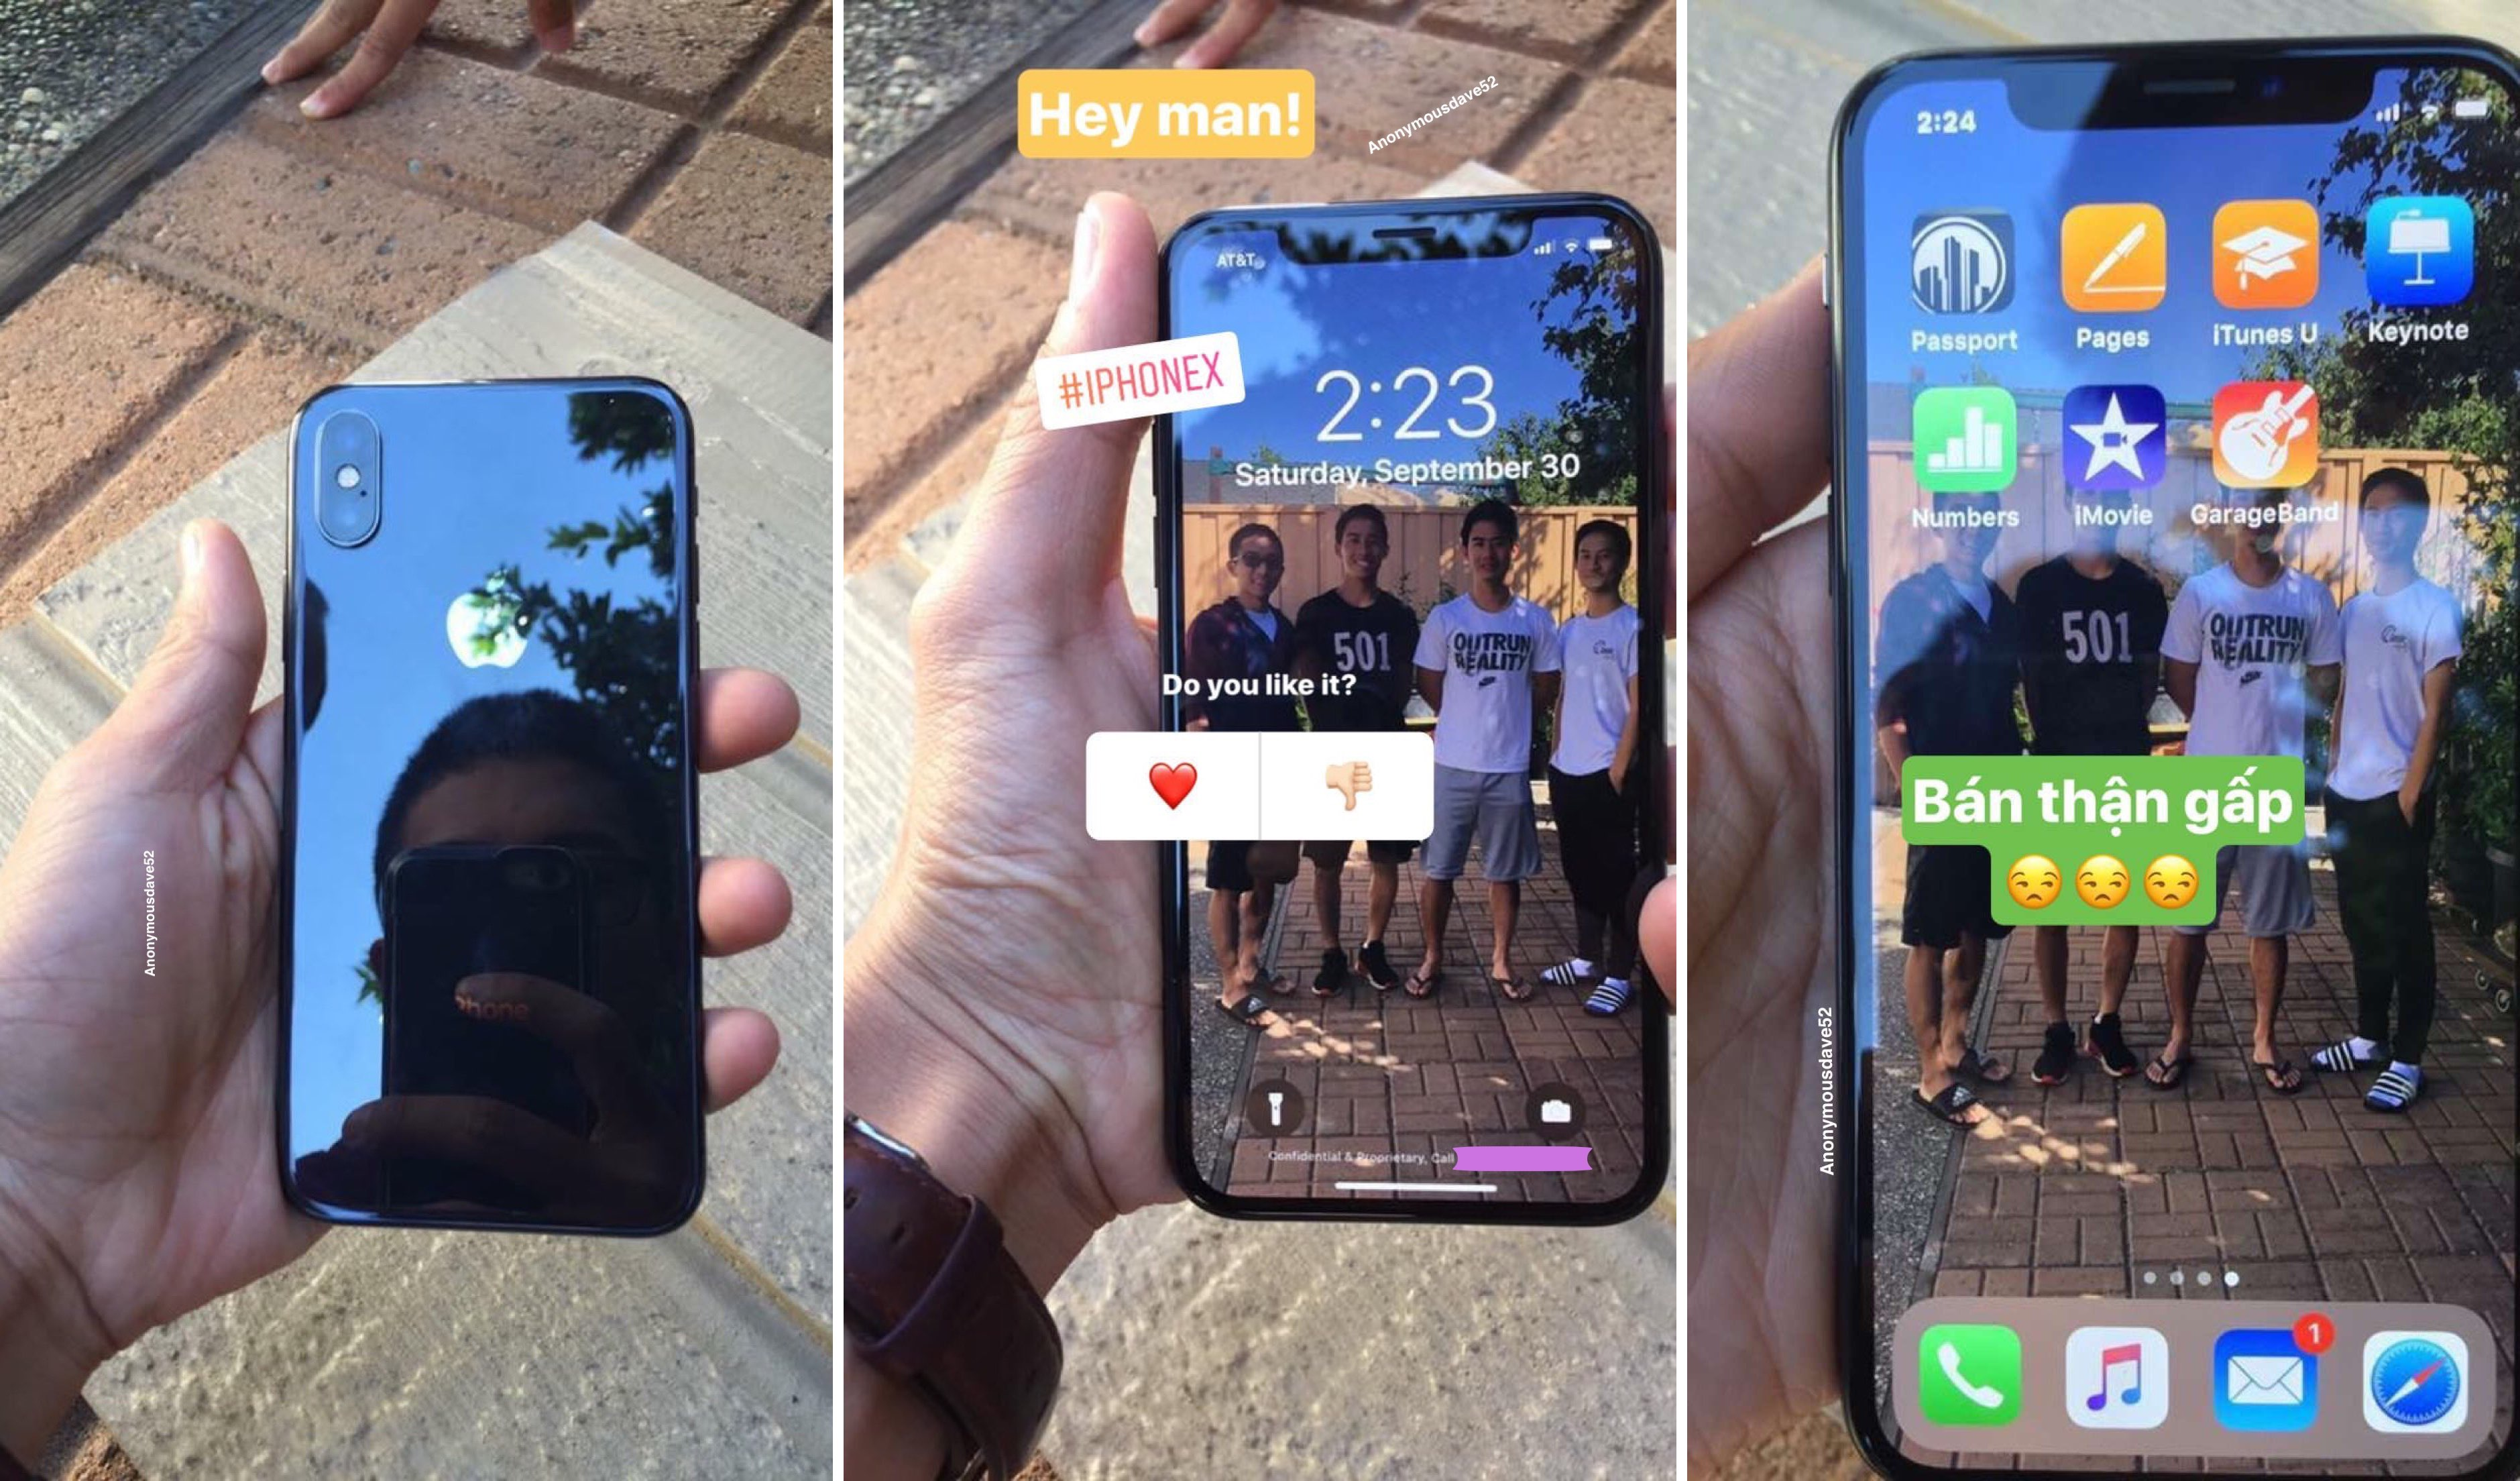 Iphone X Live Wallpaper App Iphone X In Black Amp White Spotted In The Wild Running A